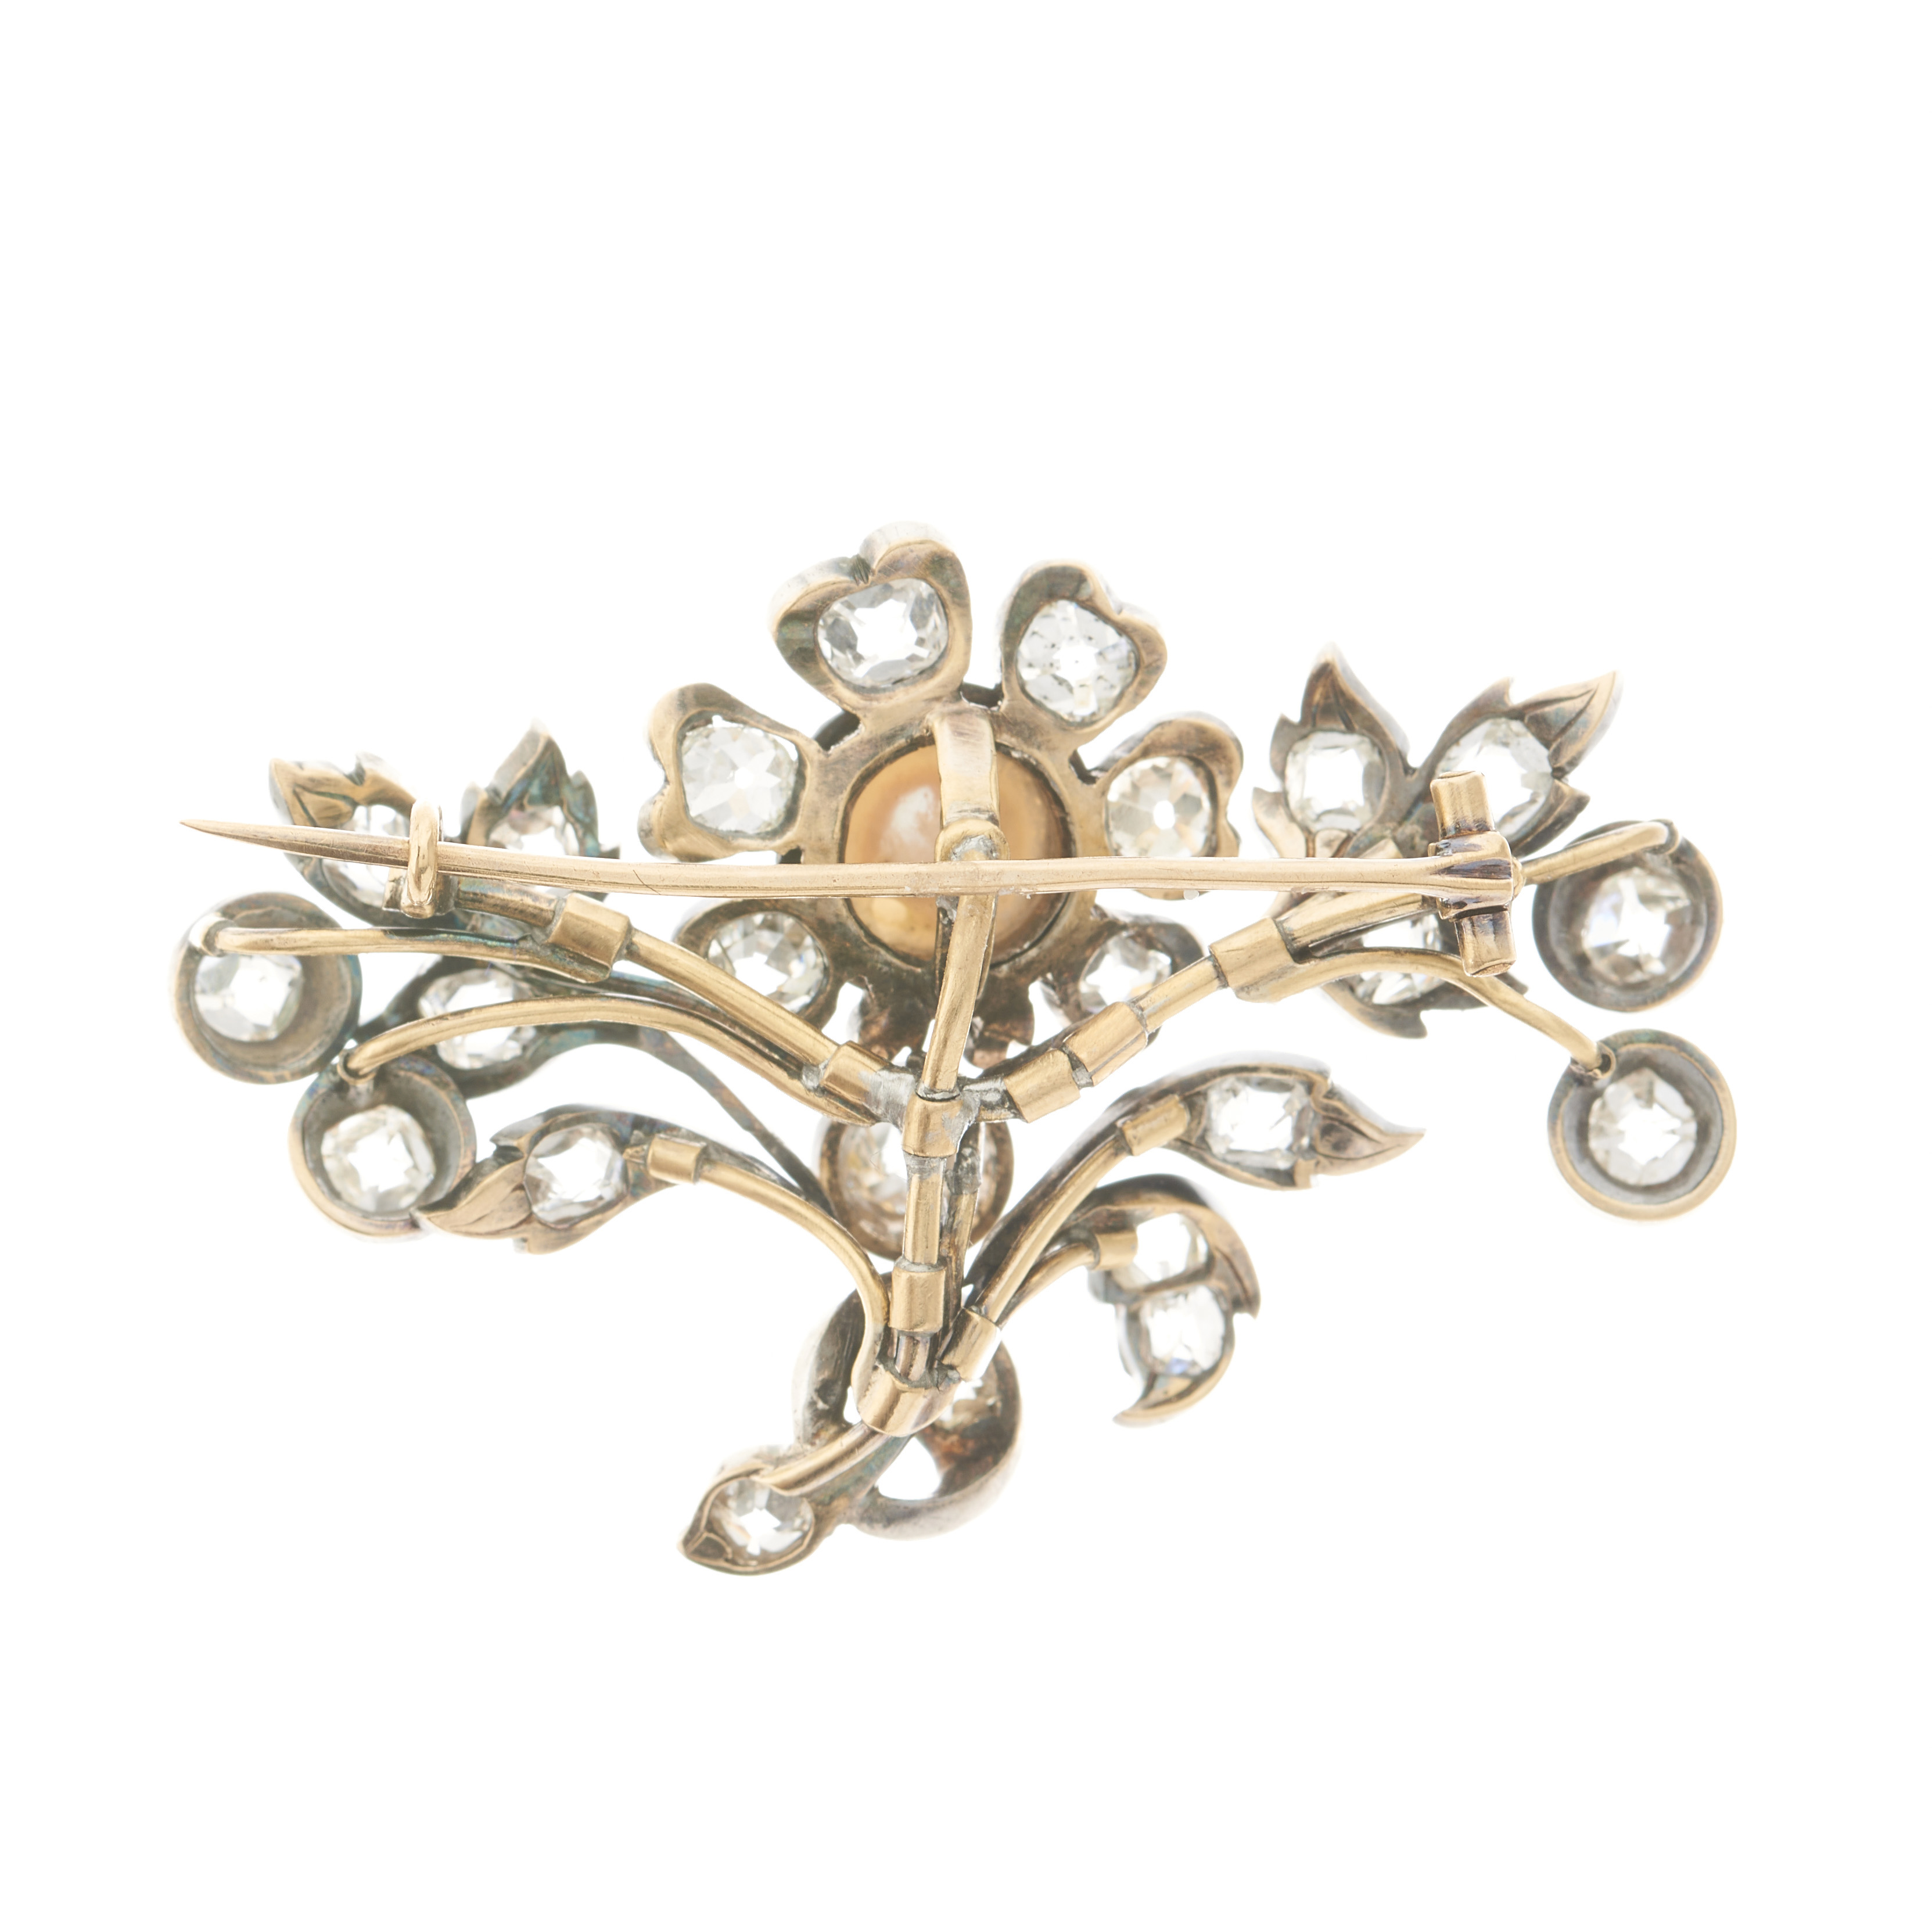 A 19th century French silver and gold, pearl and old-cut diamond floral brooch - Image 2 of 3